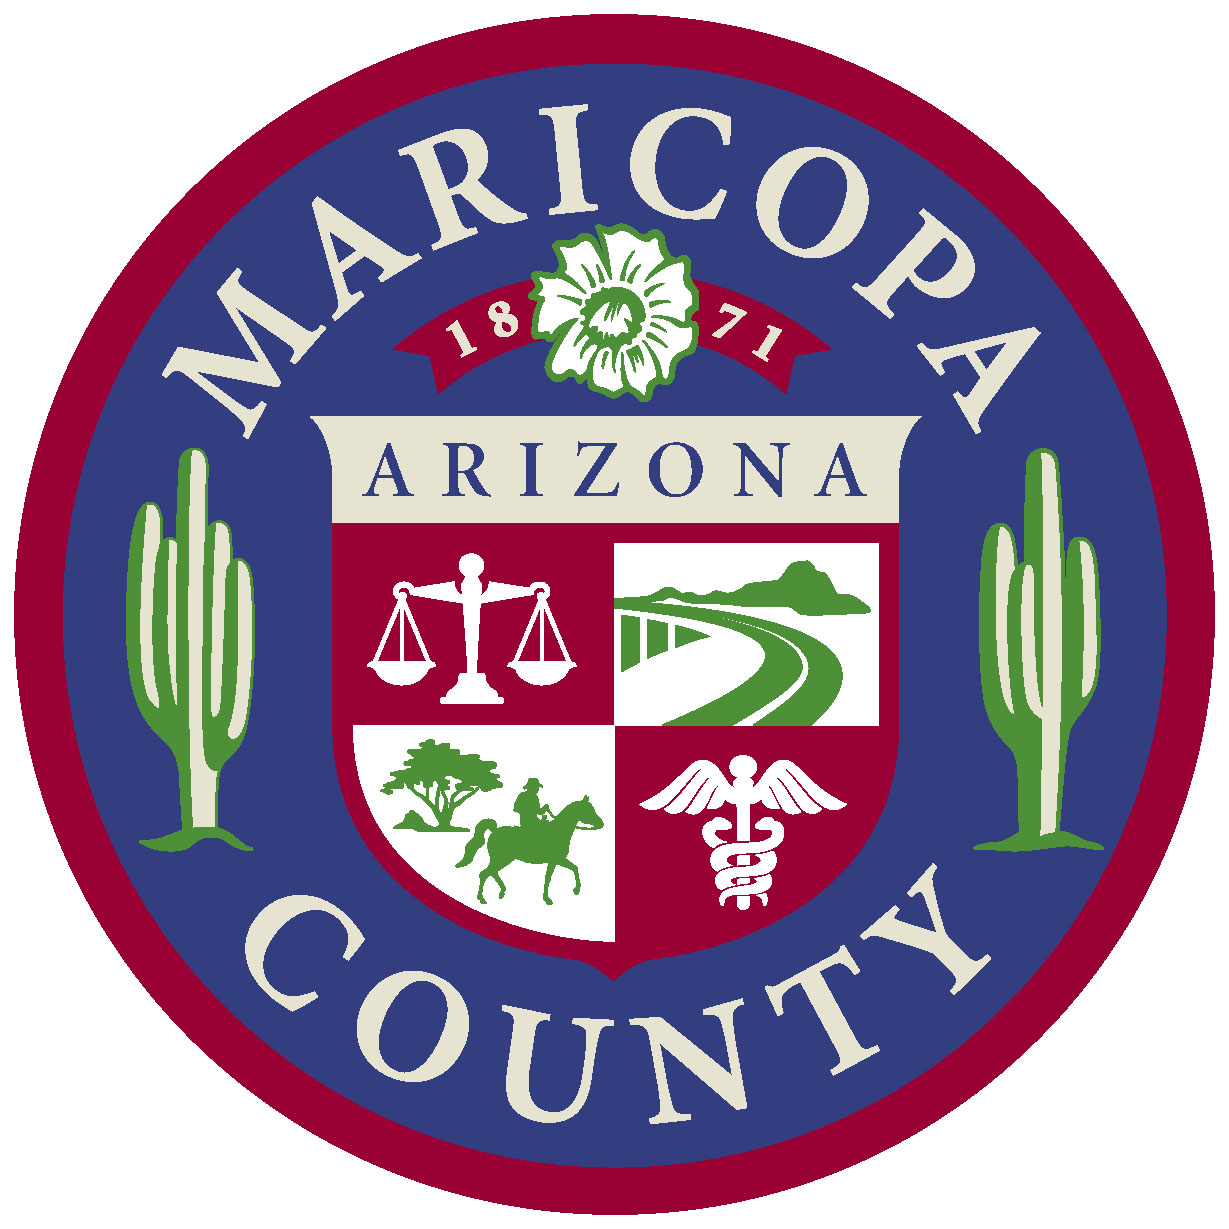 How much does Maricopa County in Arizona spend on education?